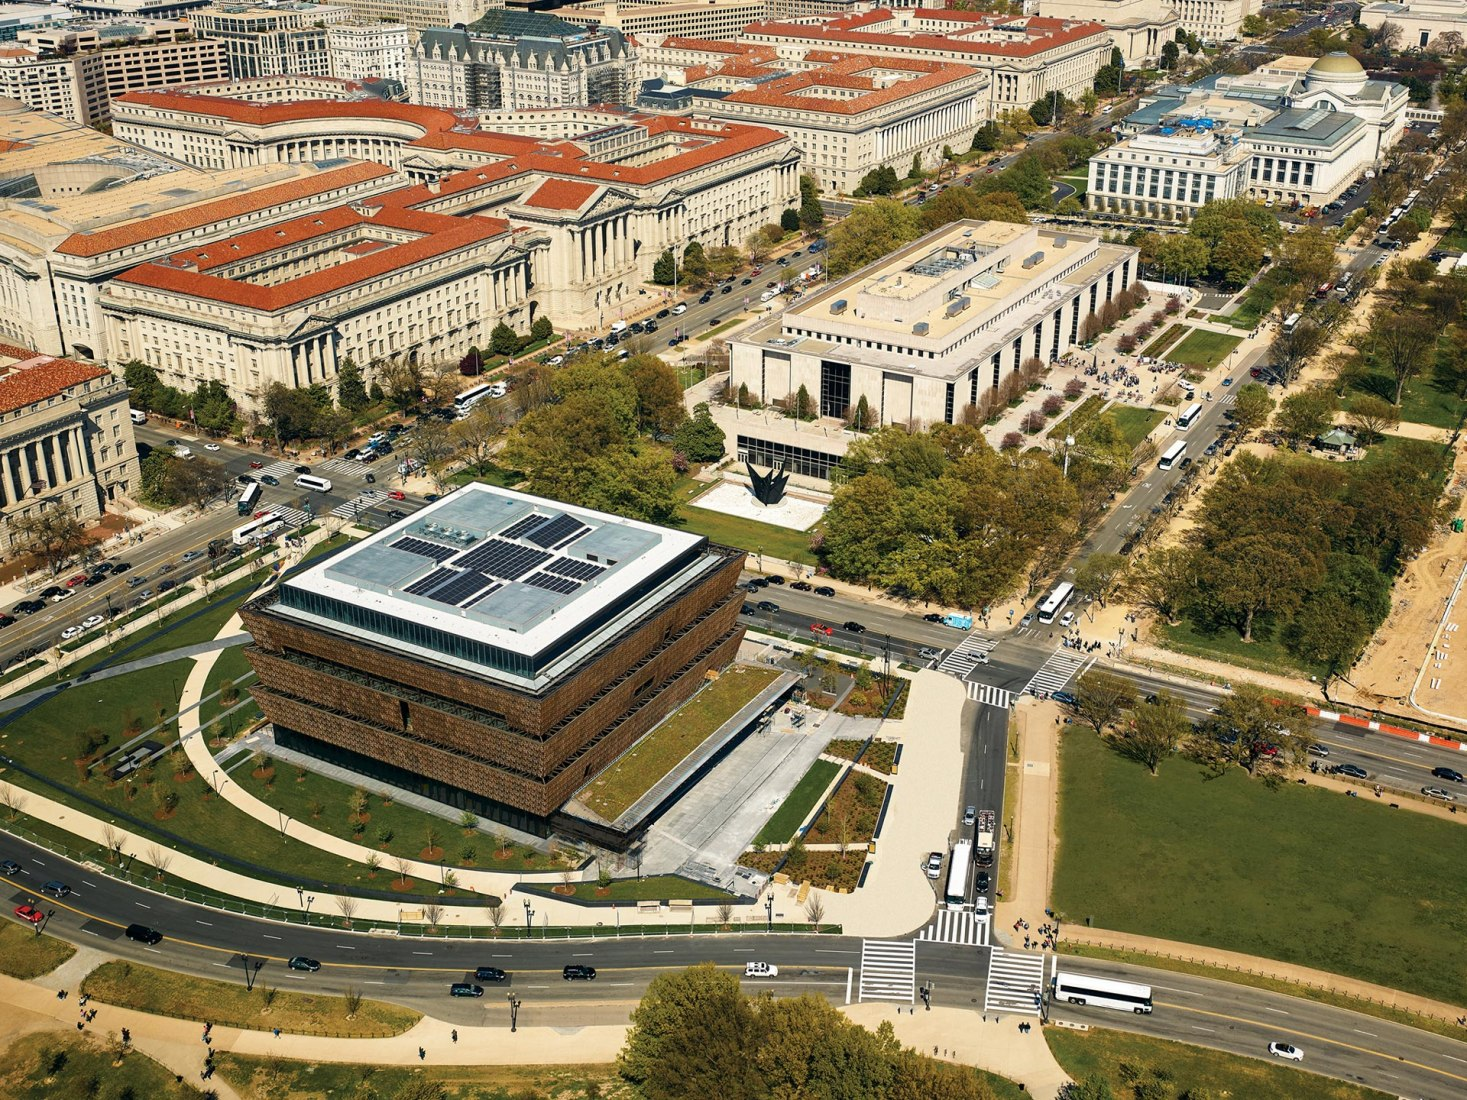 Smithsonian National Museum of African American History and Culture in Washington D.C. Adjaye Associates, The Freelon Group, Davis Brody Bond, SmithGroupJJR for the Smithsonian Institution. Image courtesy of Design Museum